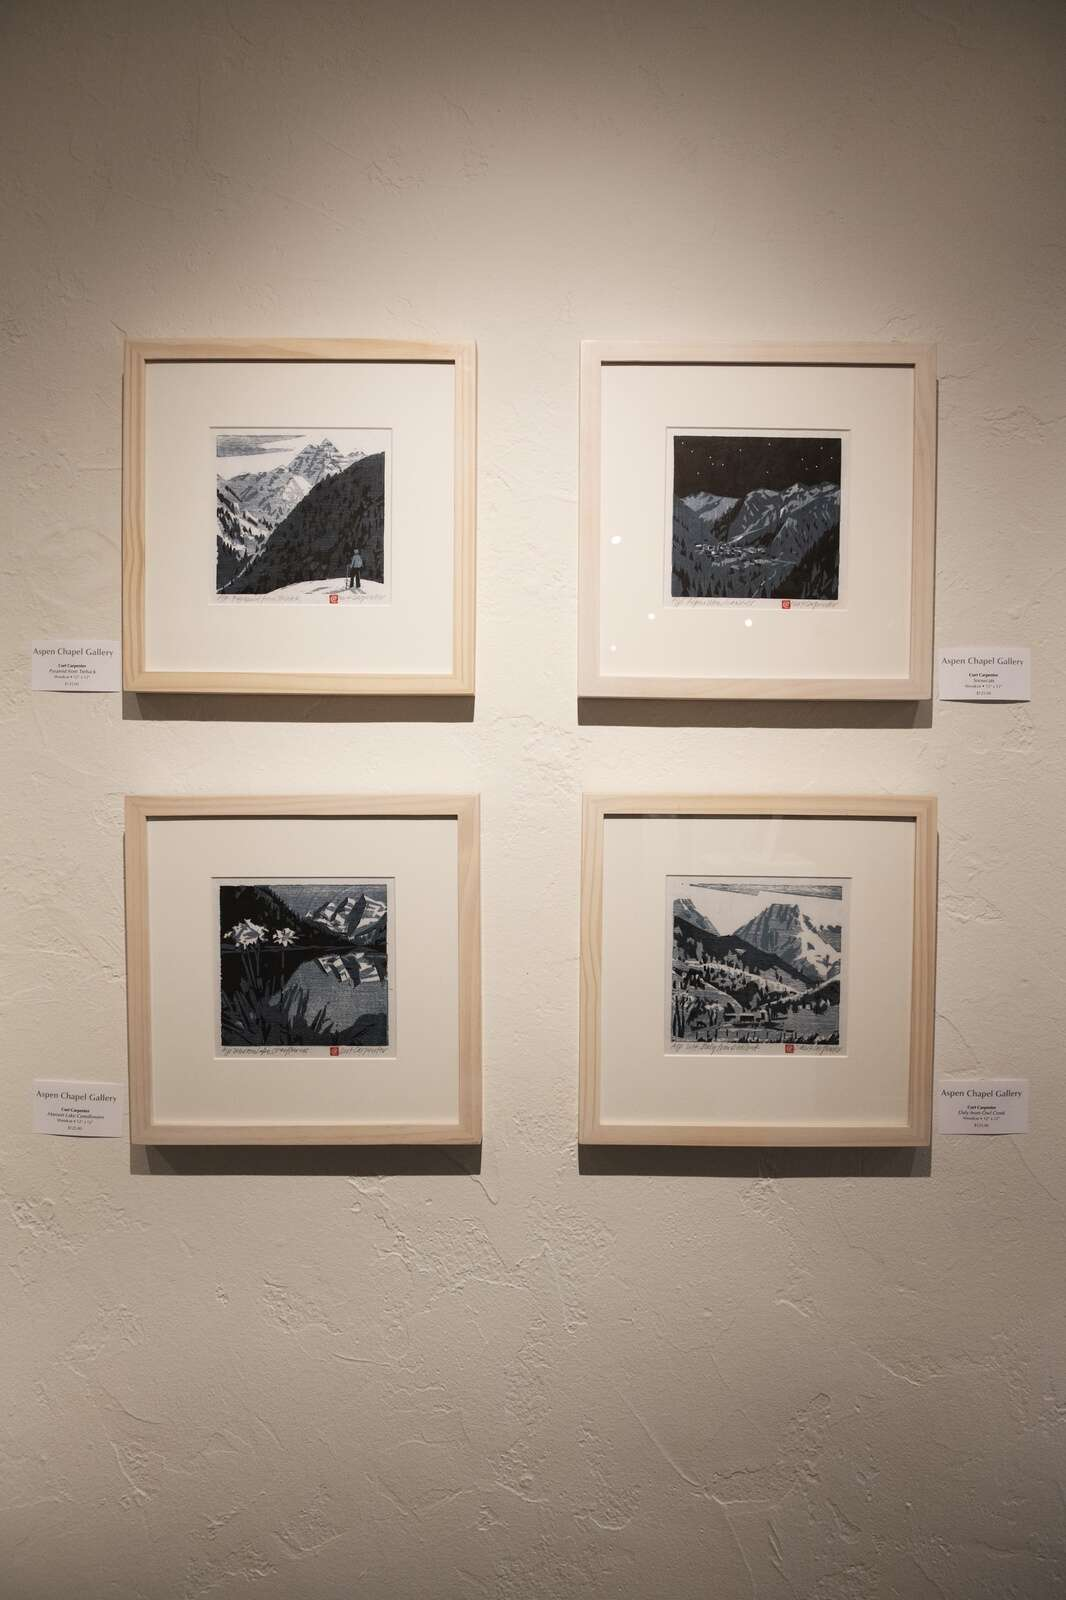 Work by Curt Carpenter is displayed in the Aspen Chapel Gallery for the Small Wonders holiday show and sale on Tuesday, Nov. 17, 2020. (Kelsey Brunner/The Aspen Times)